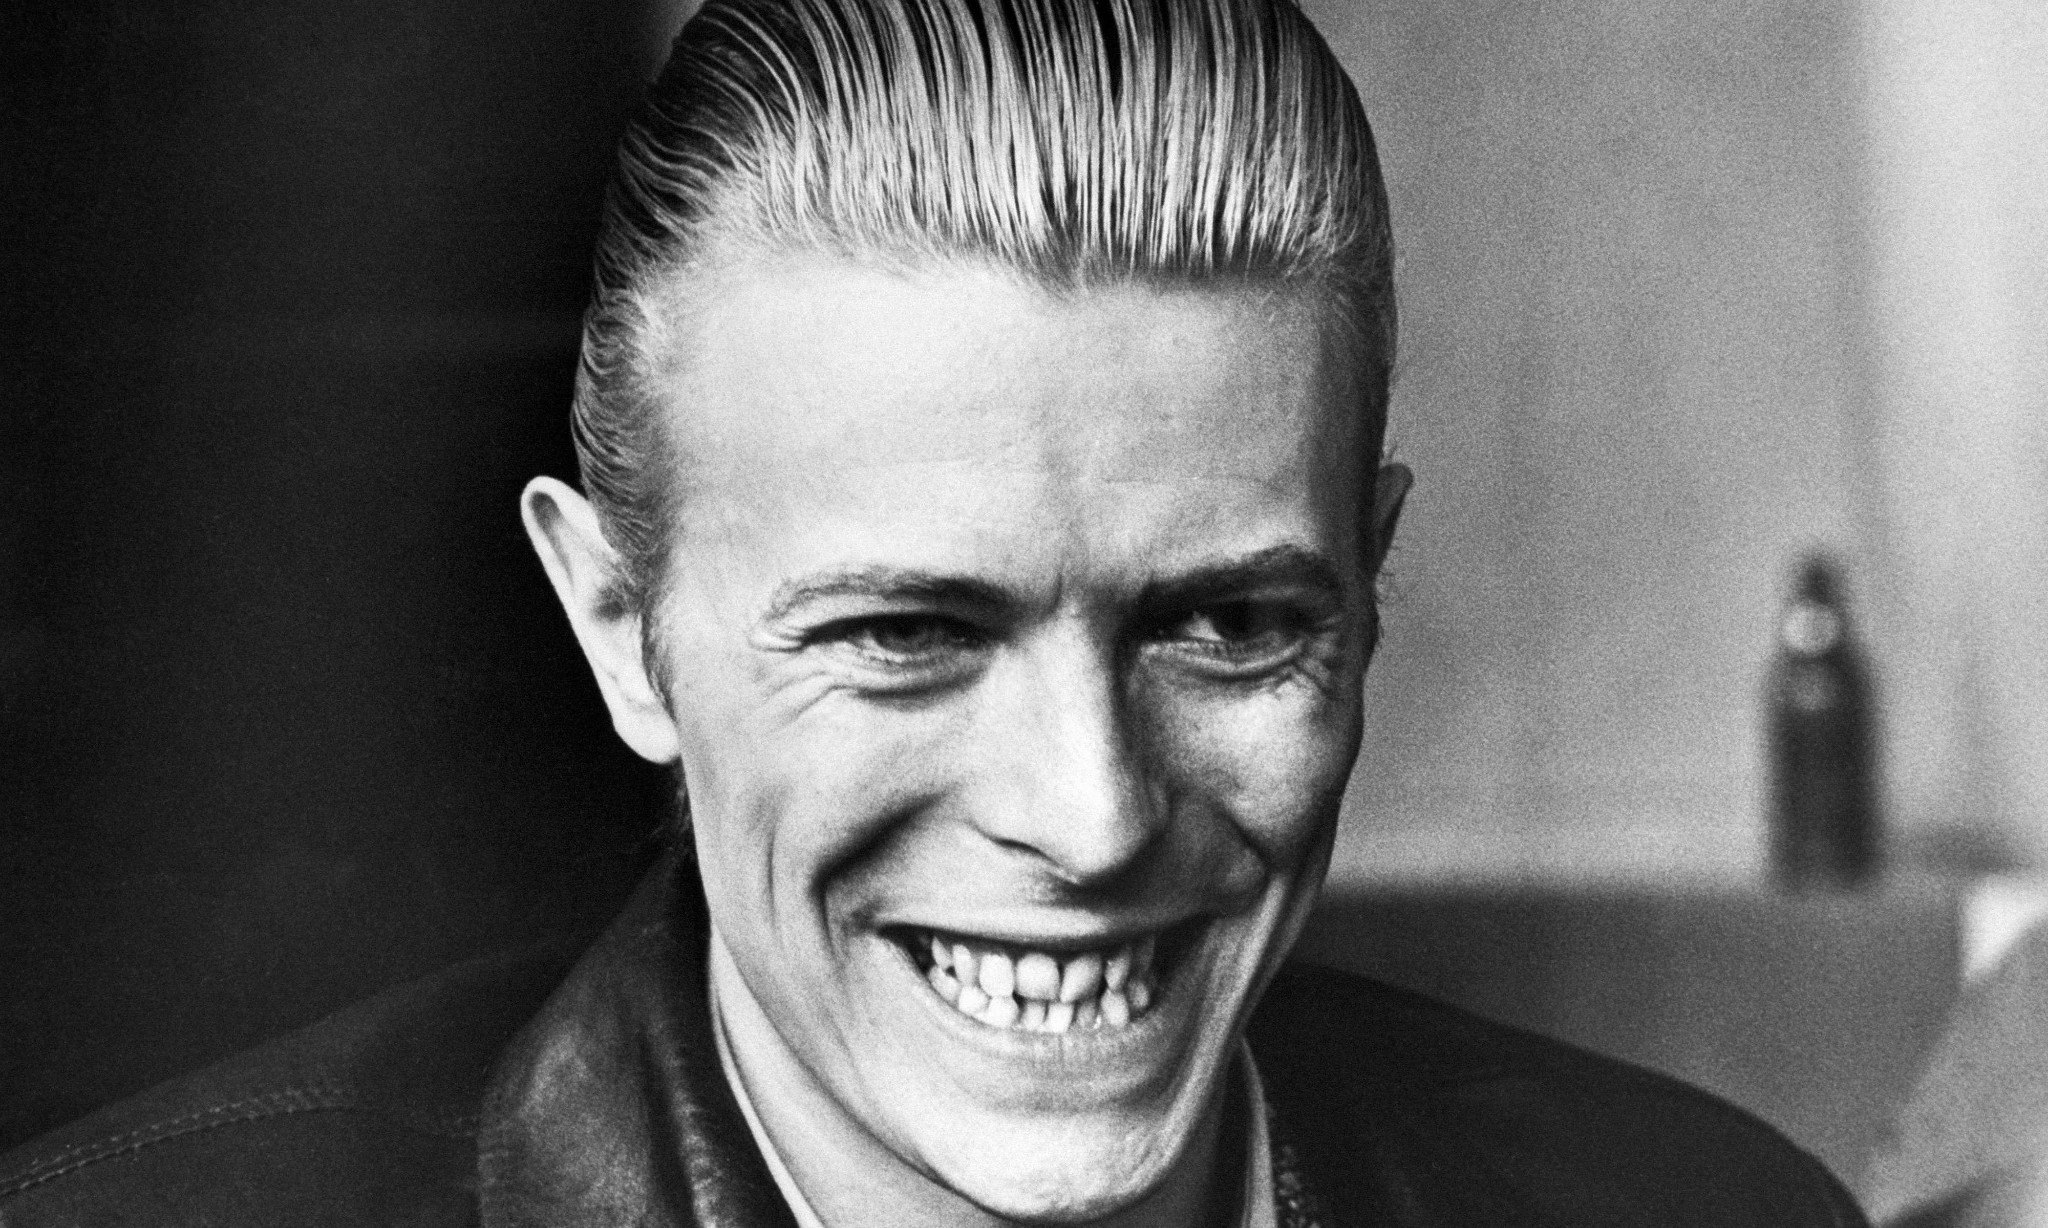 Bowie was to the 70s what the Beatles were to the 60s